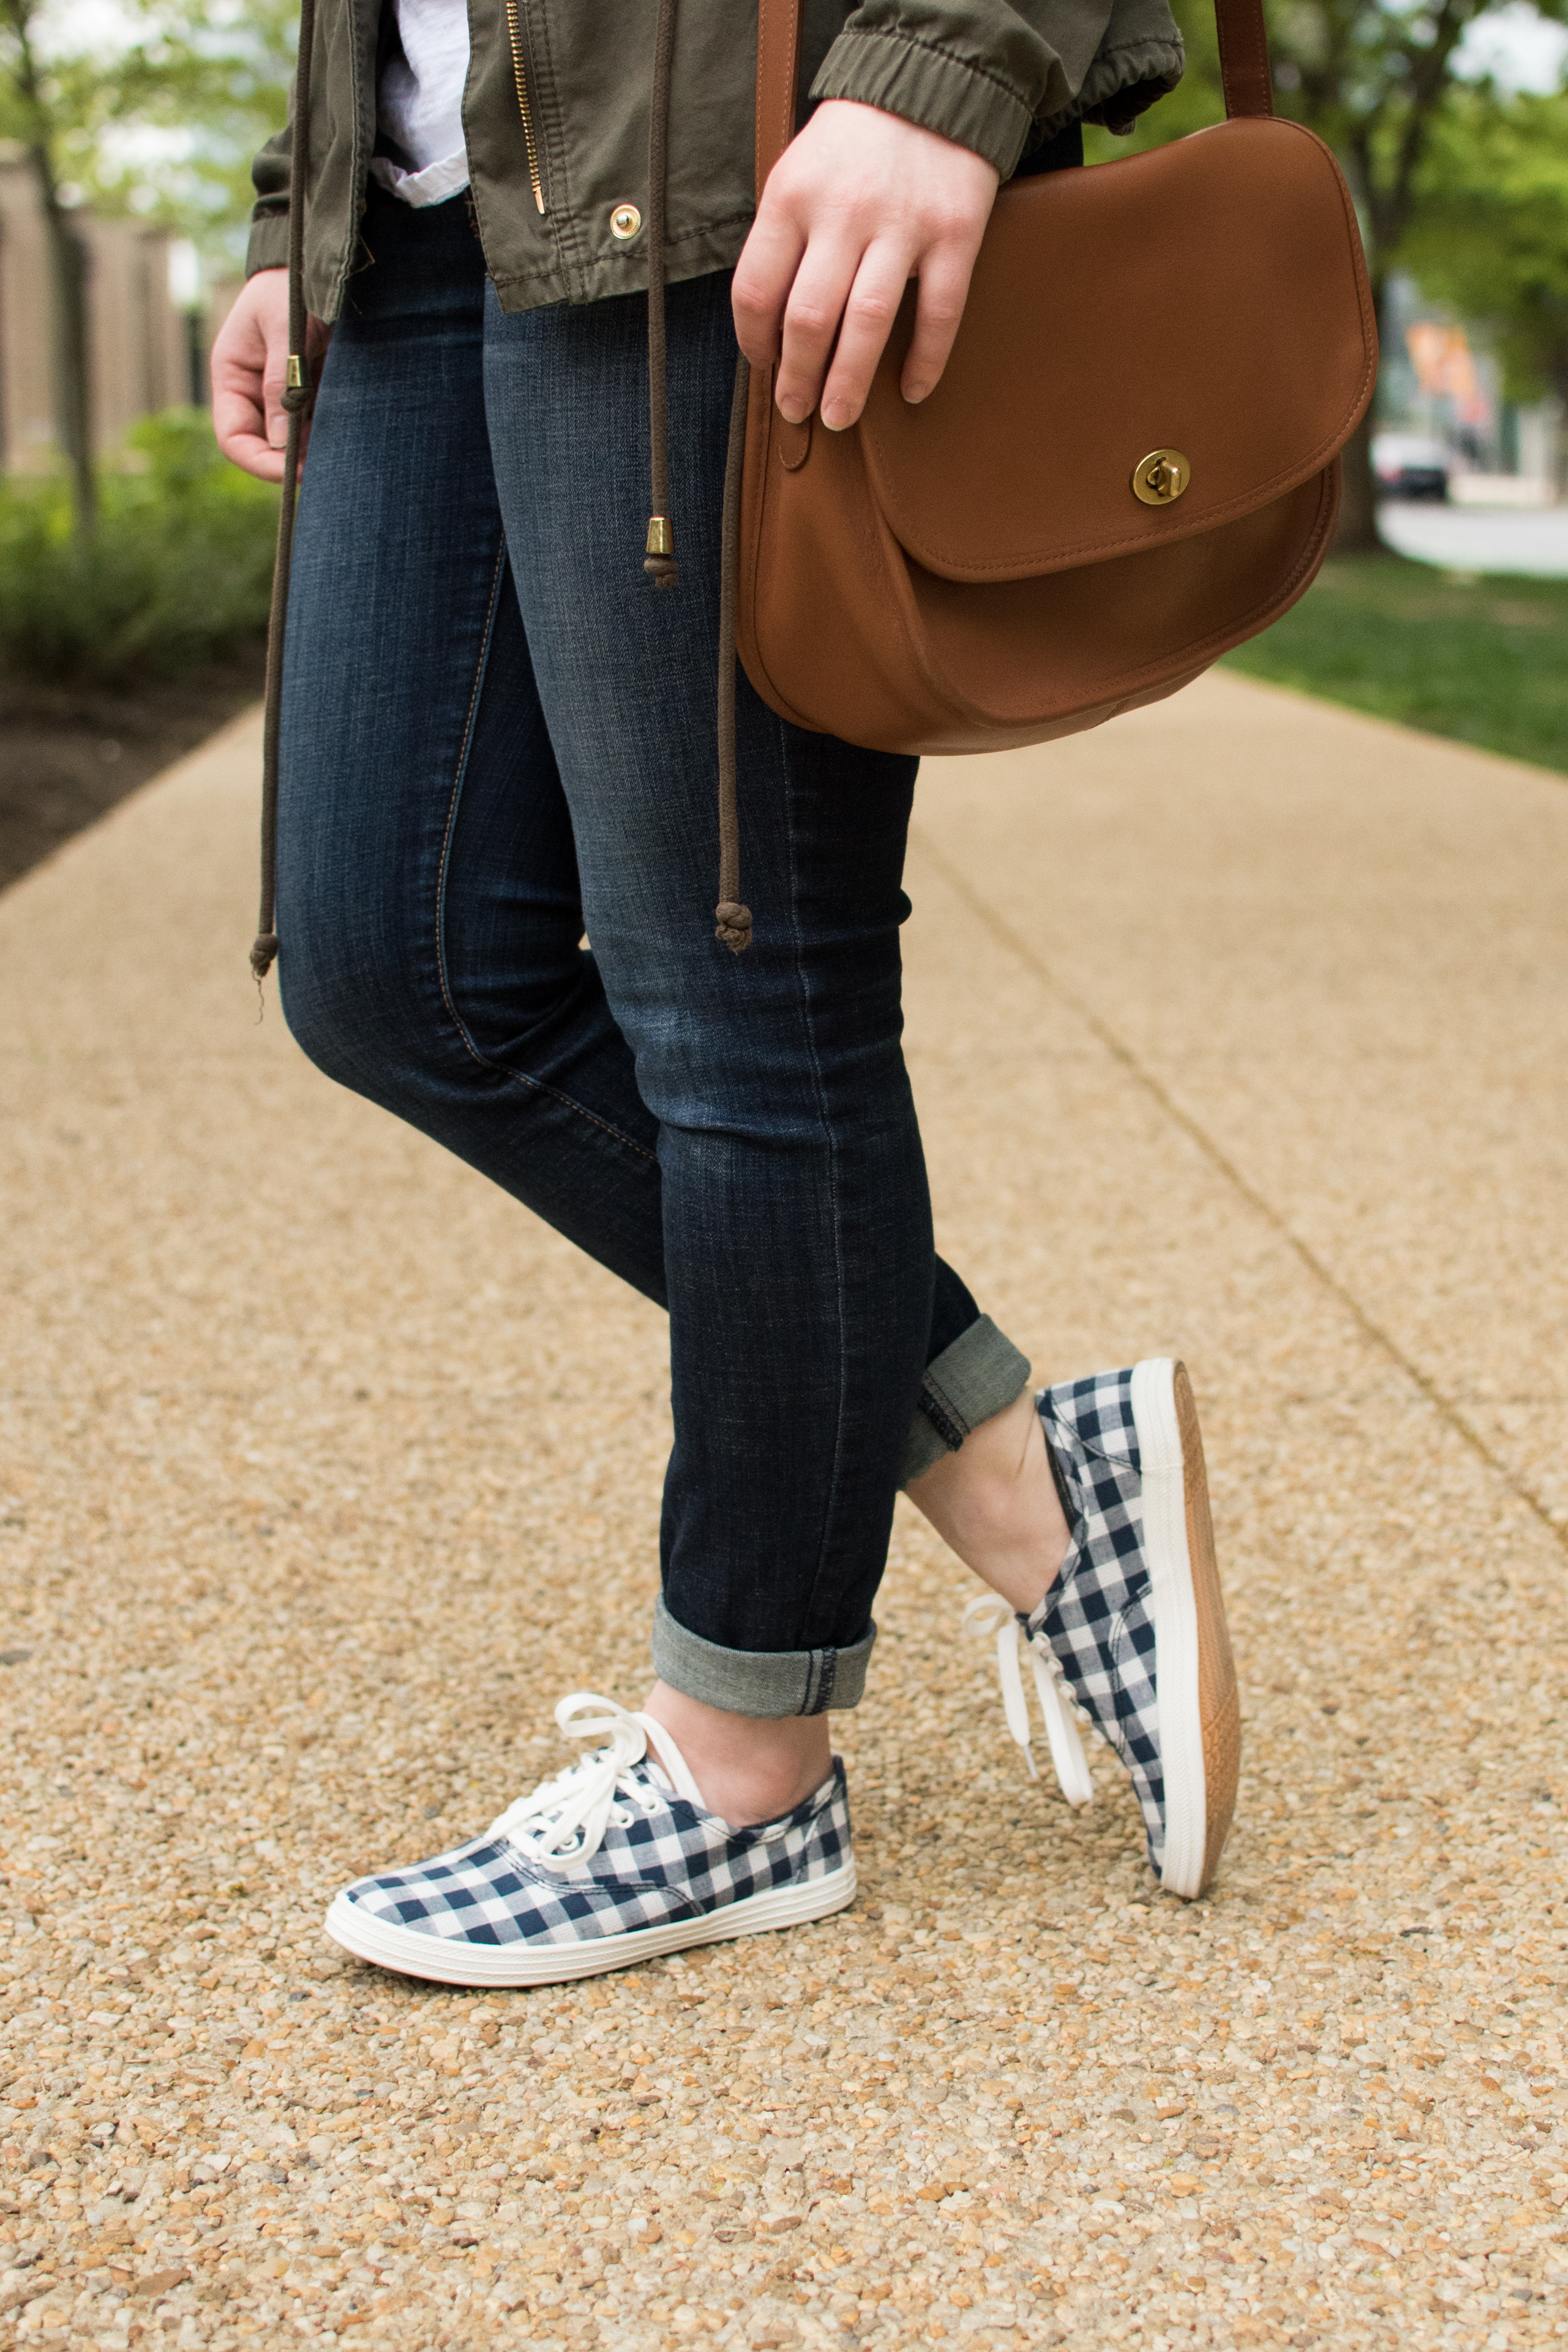 The Gingham Tennis Shoes | Something Good, @danaerinw cognac saddle bag, crossbody bag